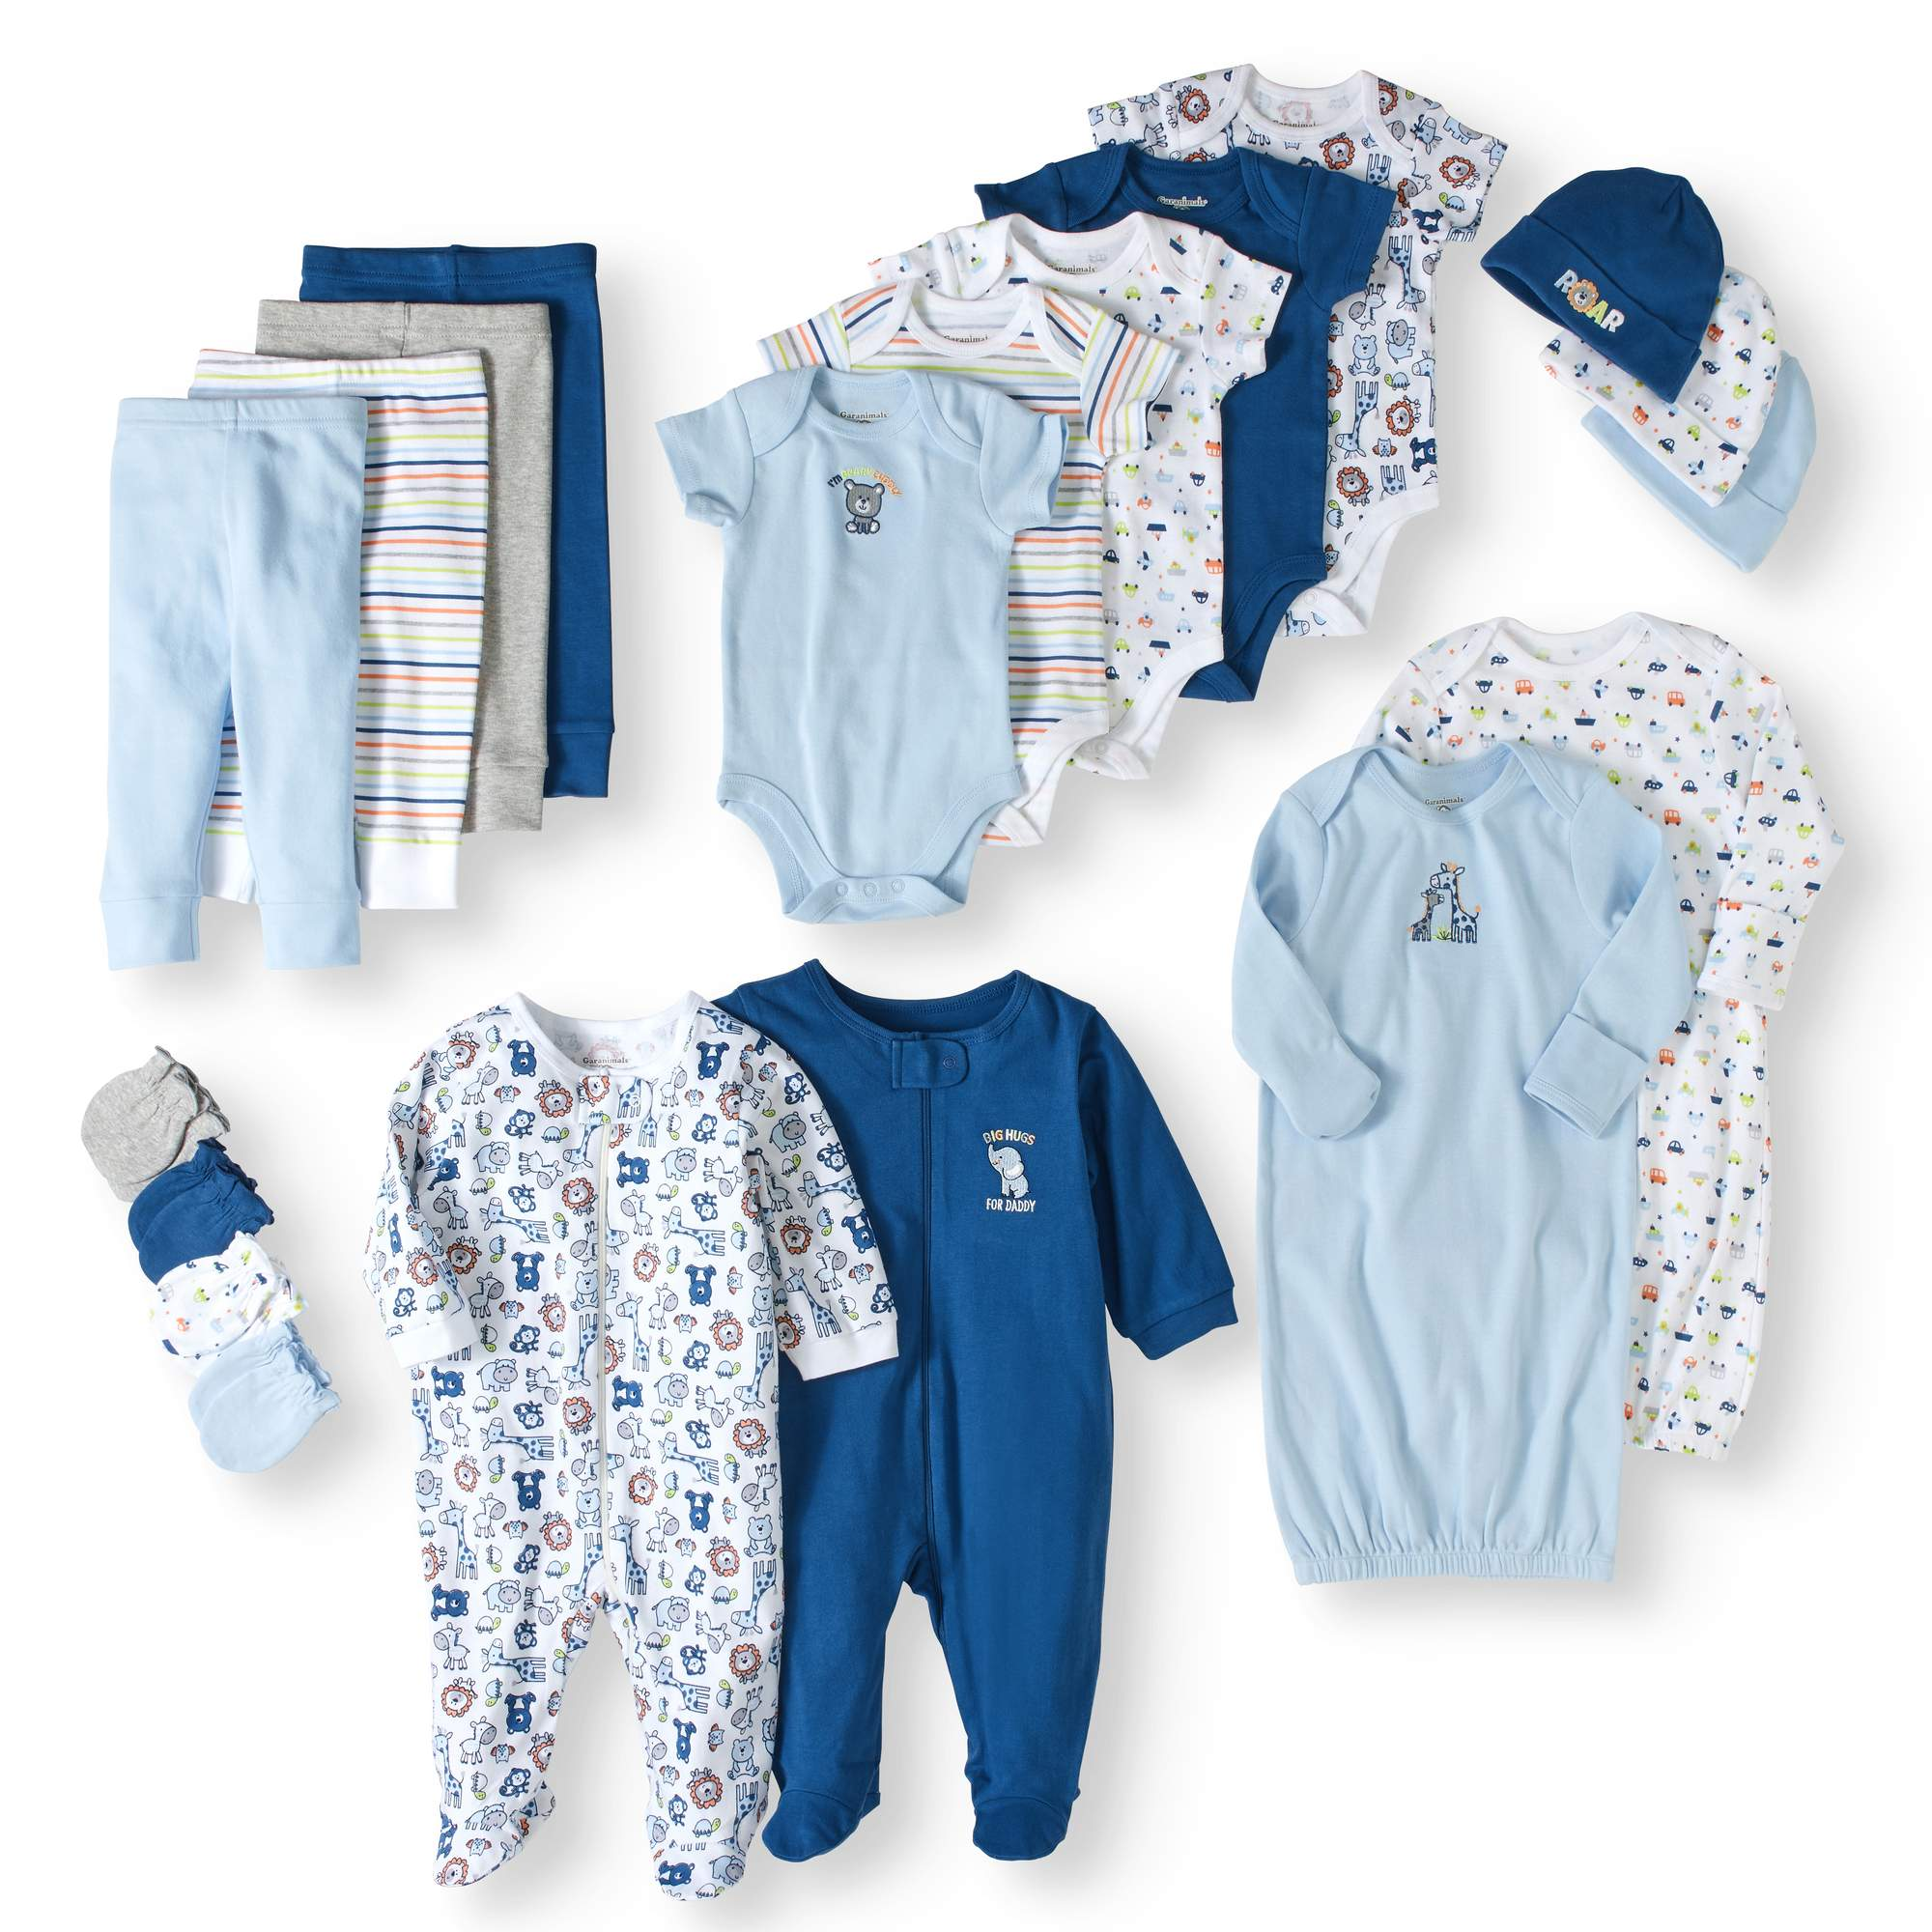 f505722eb9f21 Details about Garanimals Newborn Baby Boy 20 Piece Layette Baby Shower Gift  Set